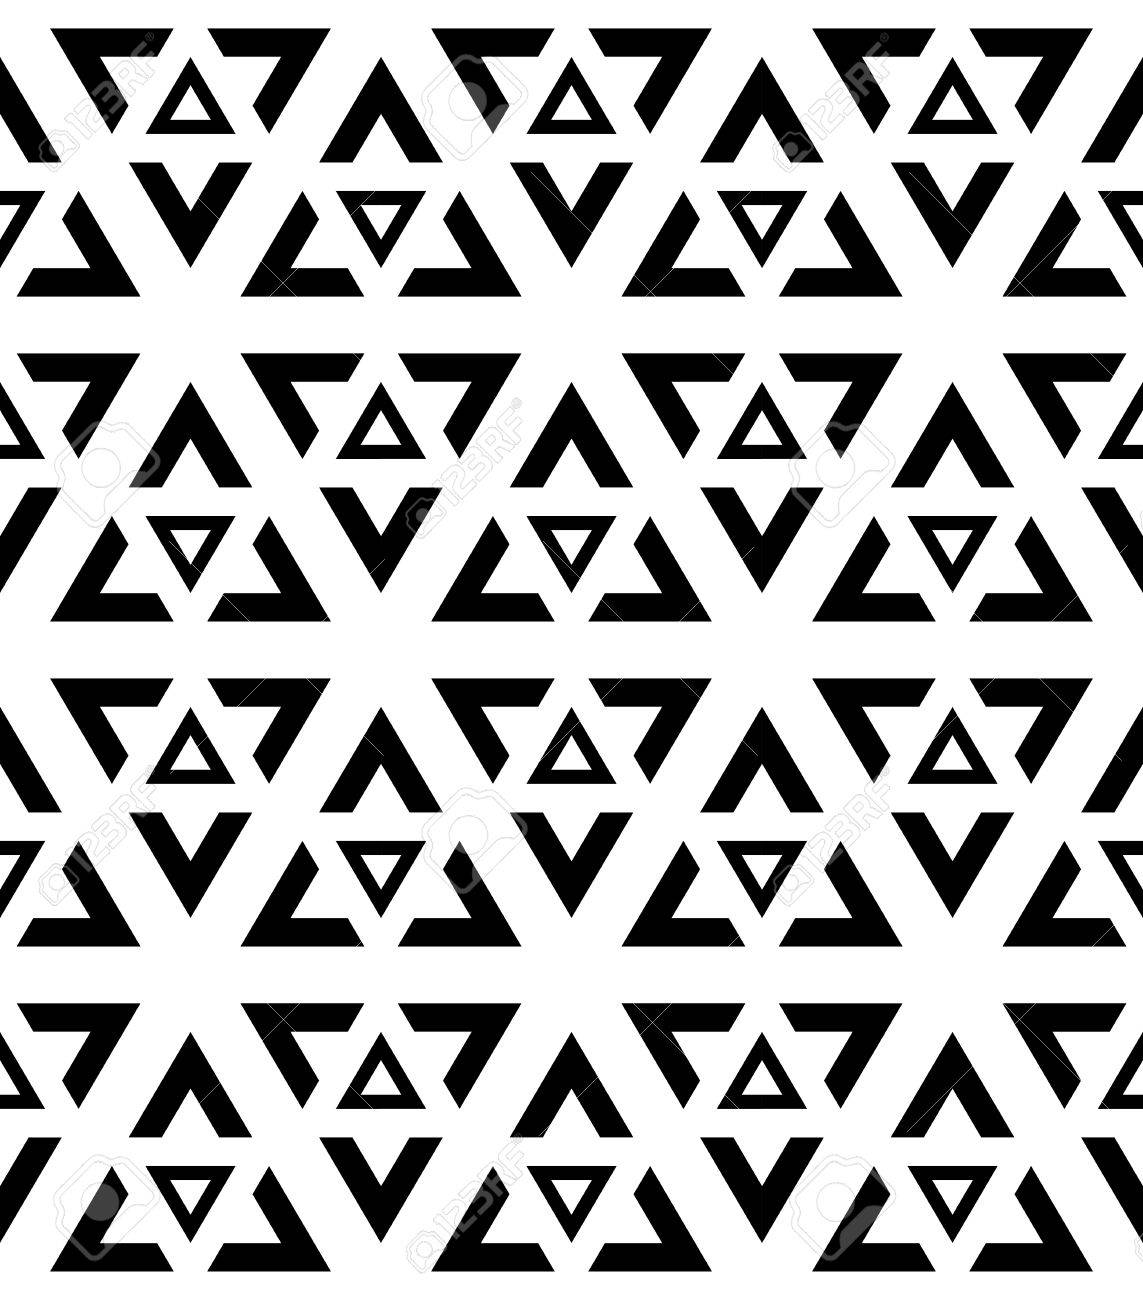 Modern bed sheet texture - Black And White Bed Sheets Texture Pattern Sacred Geometry Black And White Textile Print Stylish